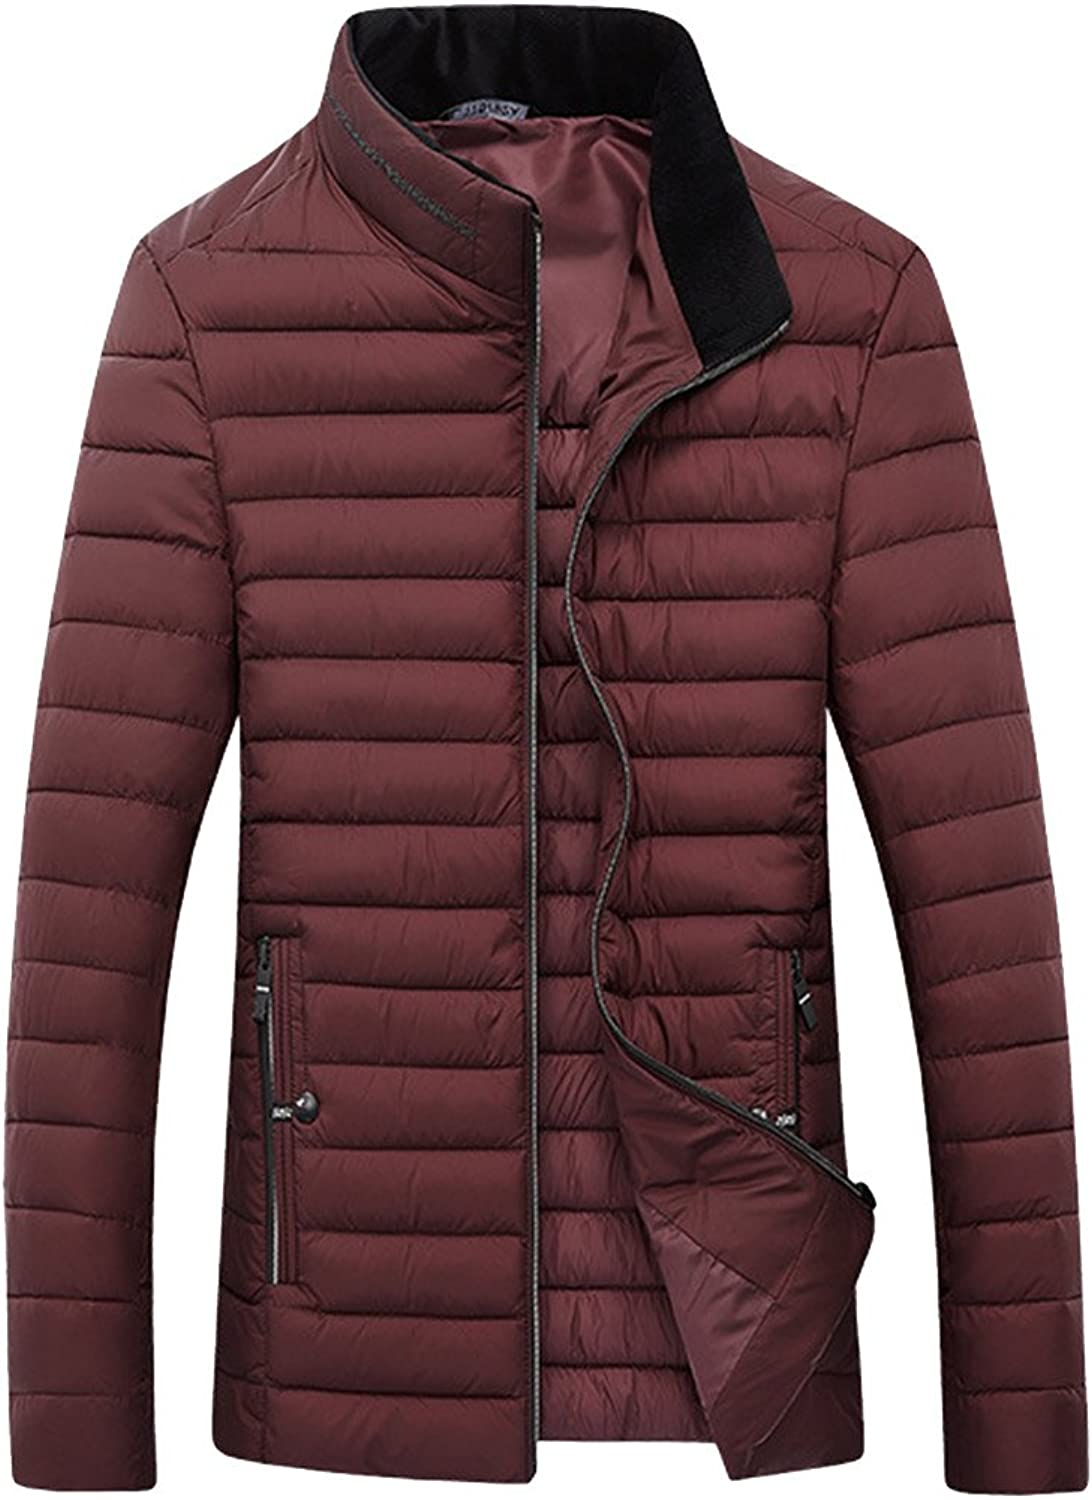 Sun Lorence Men's Lightweight Stand Collar Packable Quilted Puffer Down Jacket Coat